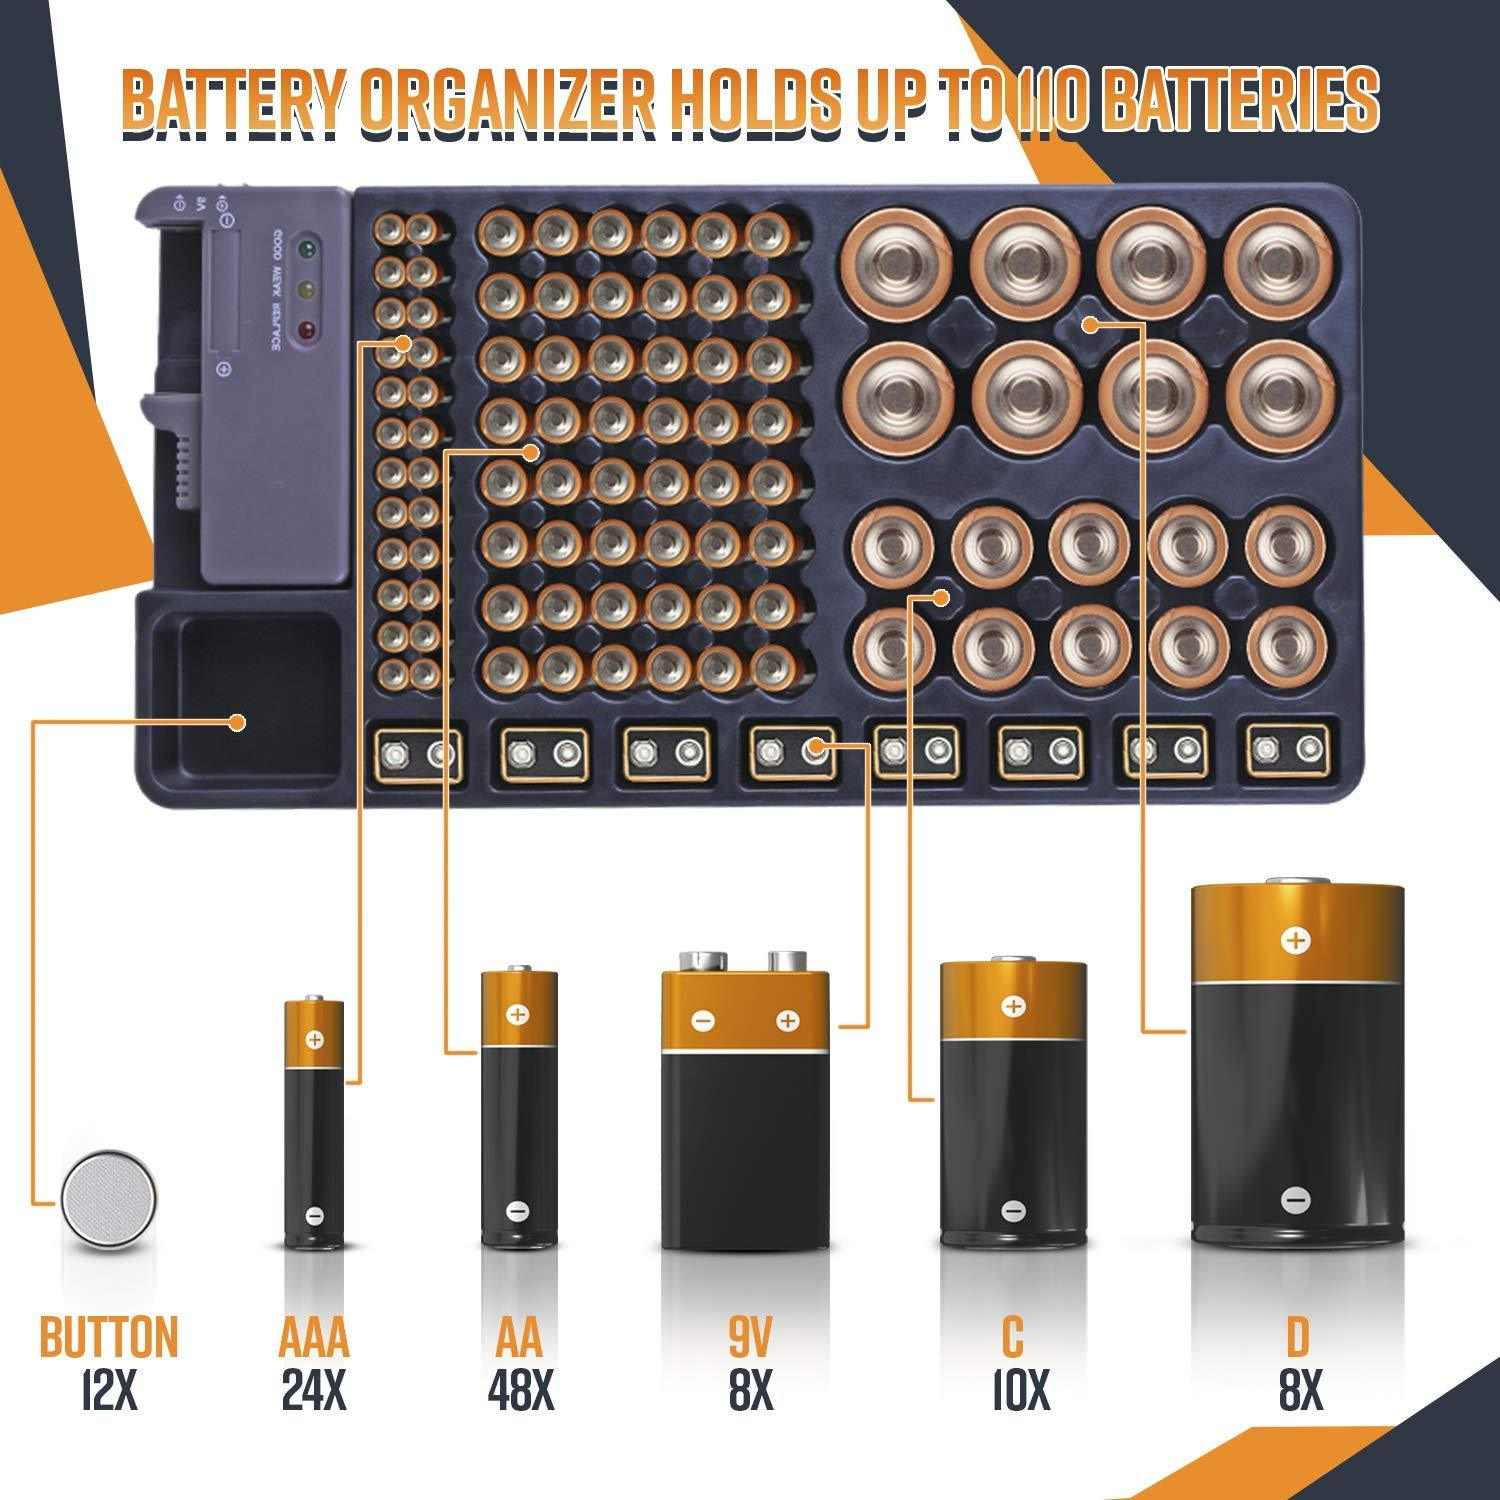 BatteryCapsule® With Energy Tester